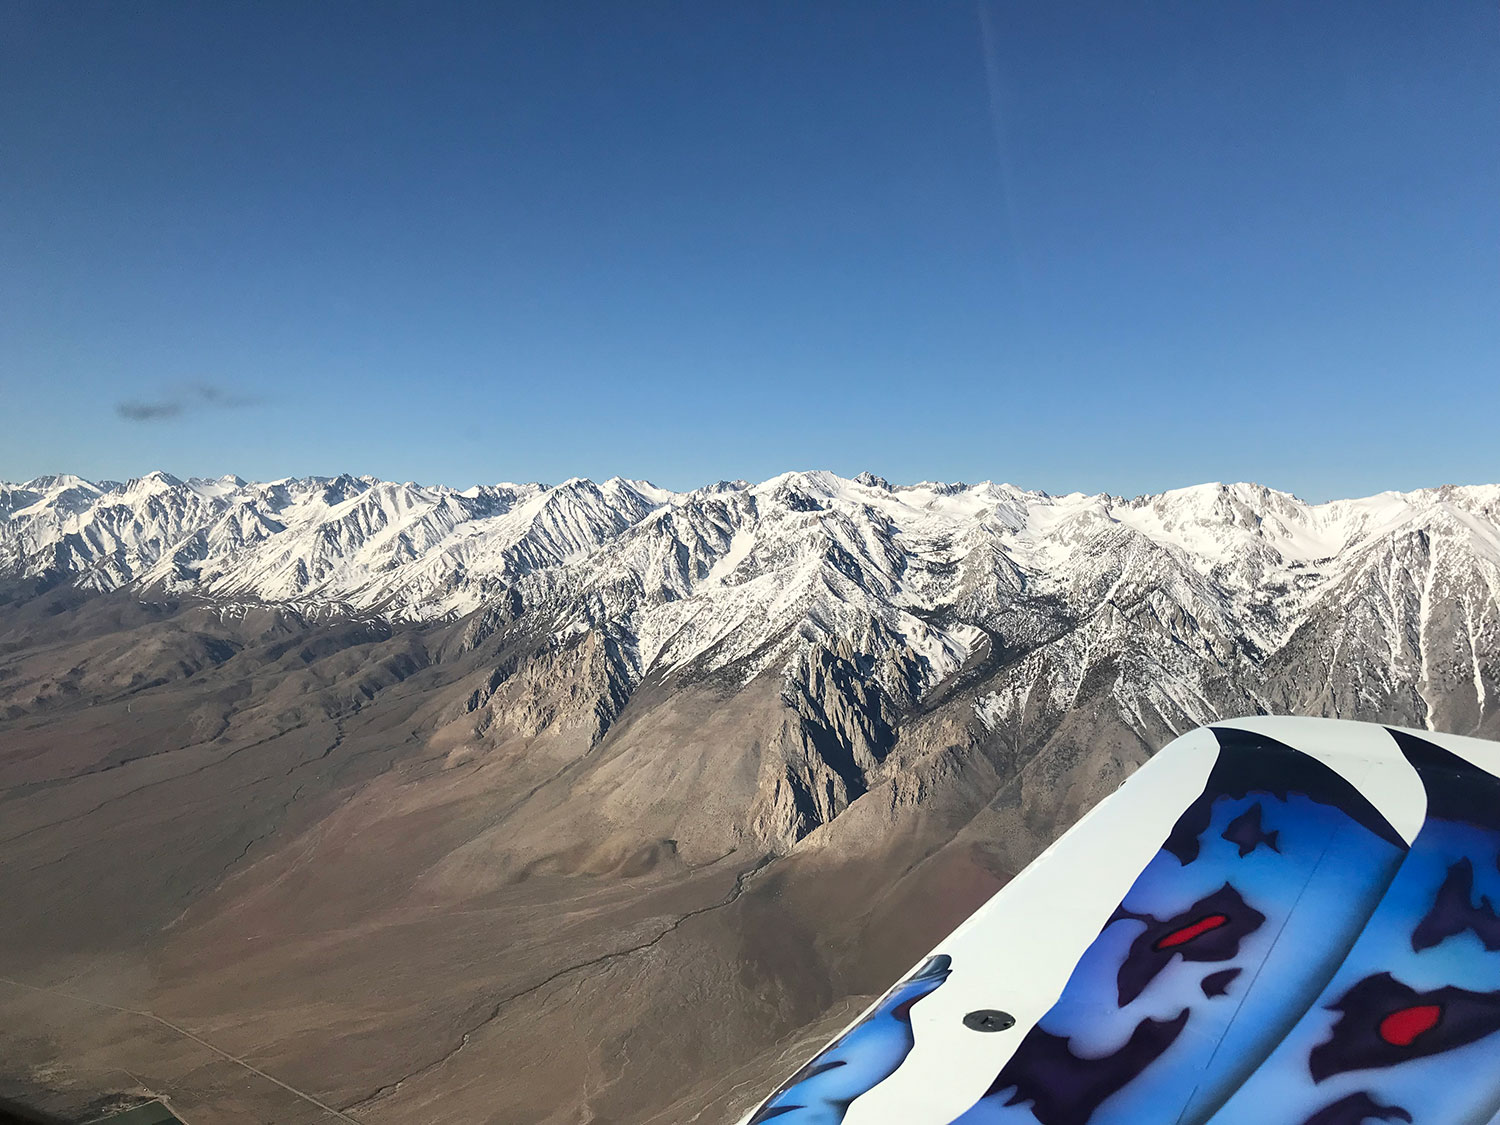 Aviating over the Sierras